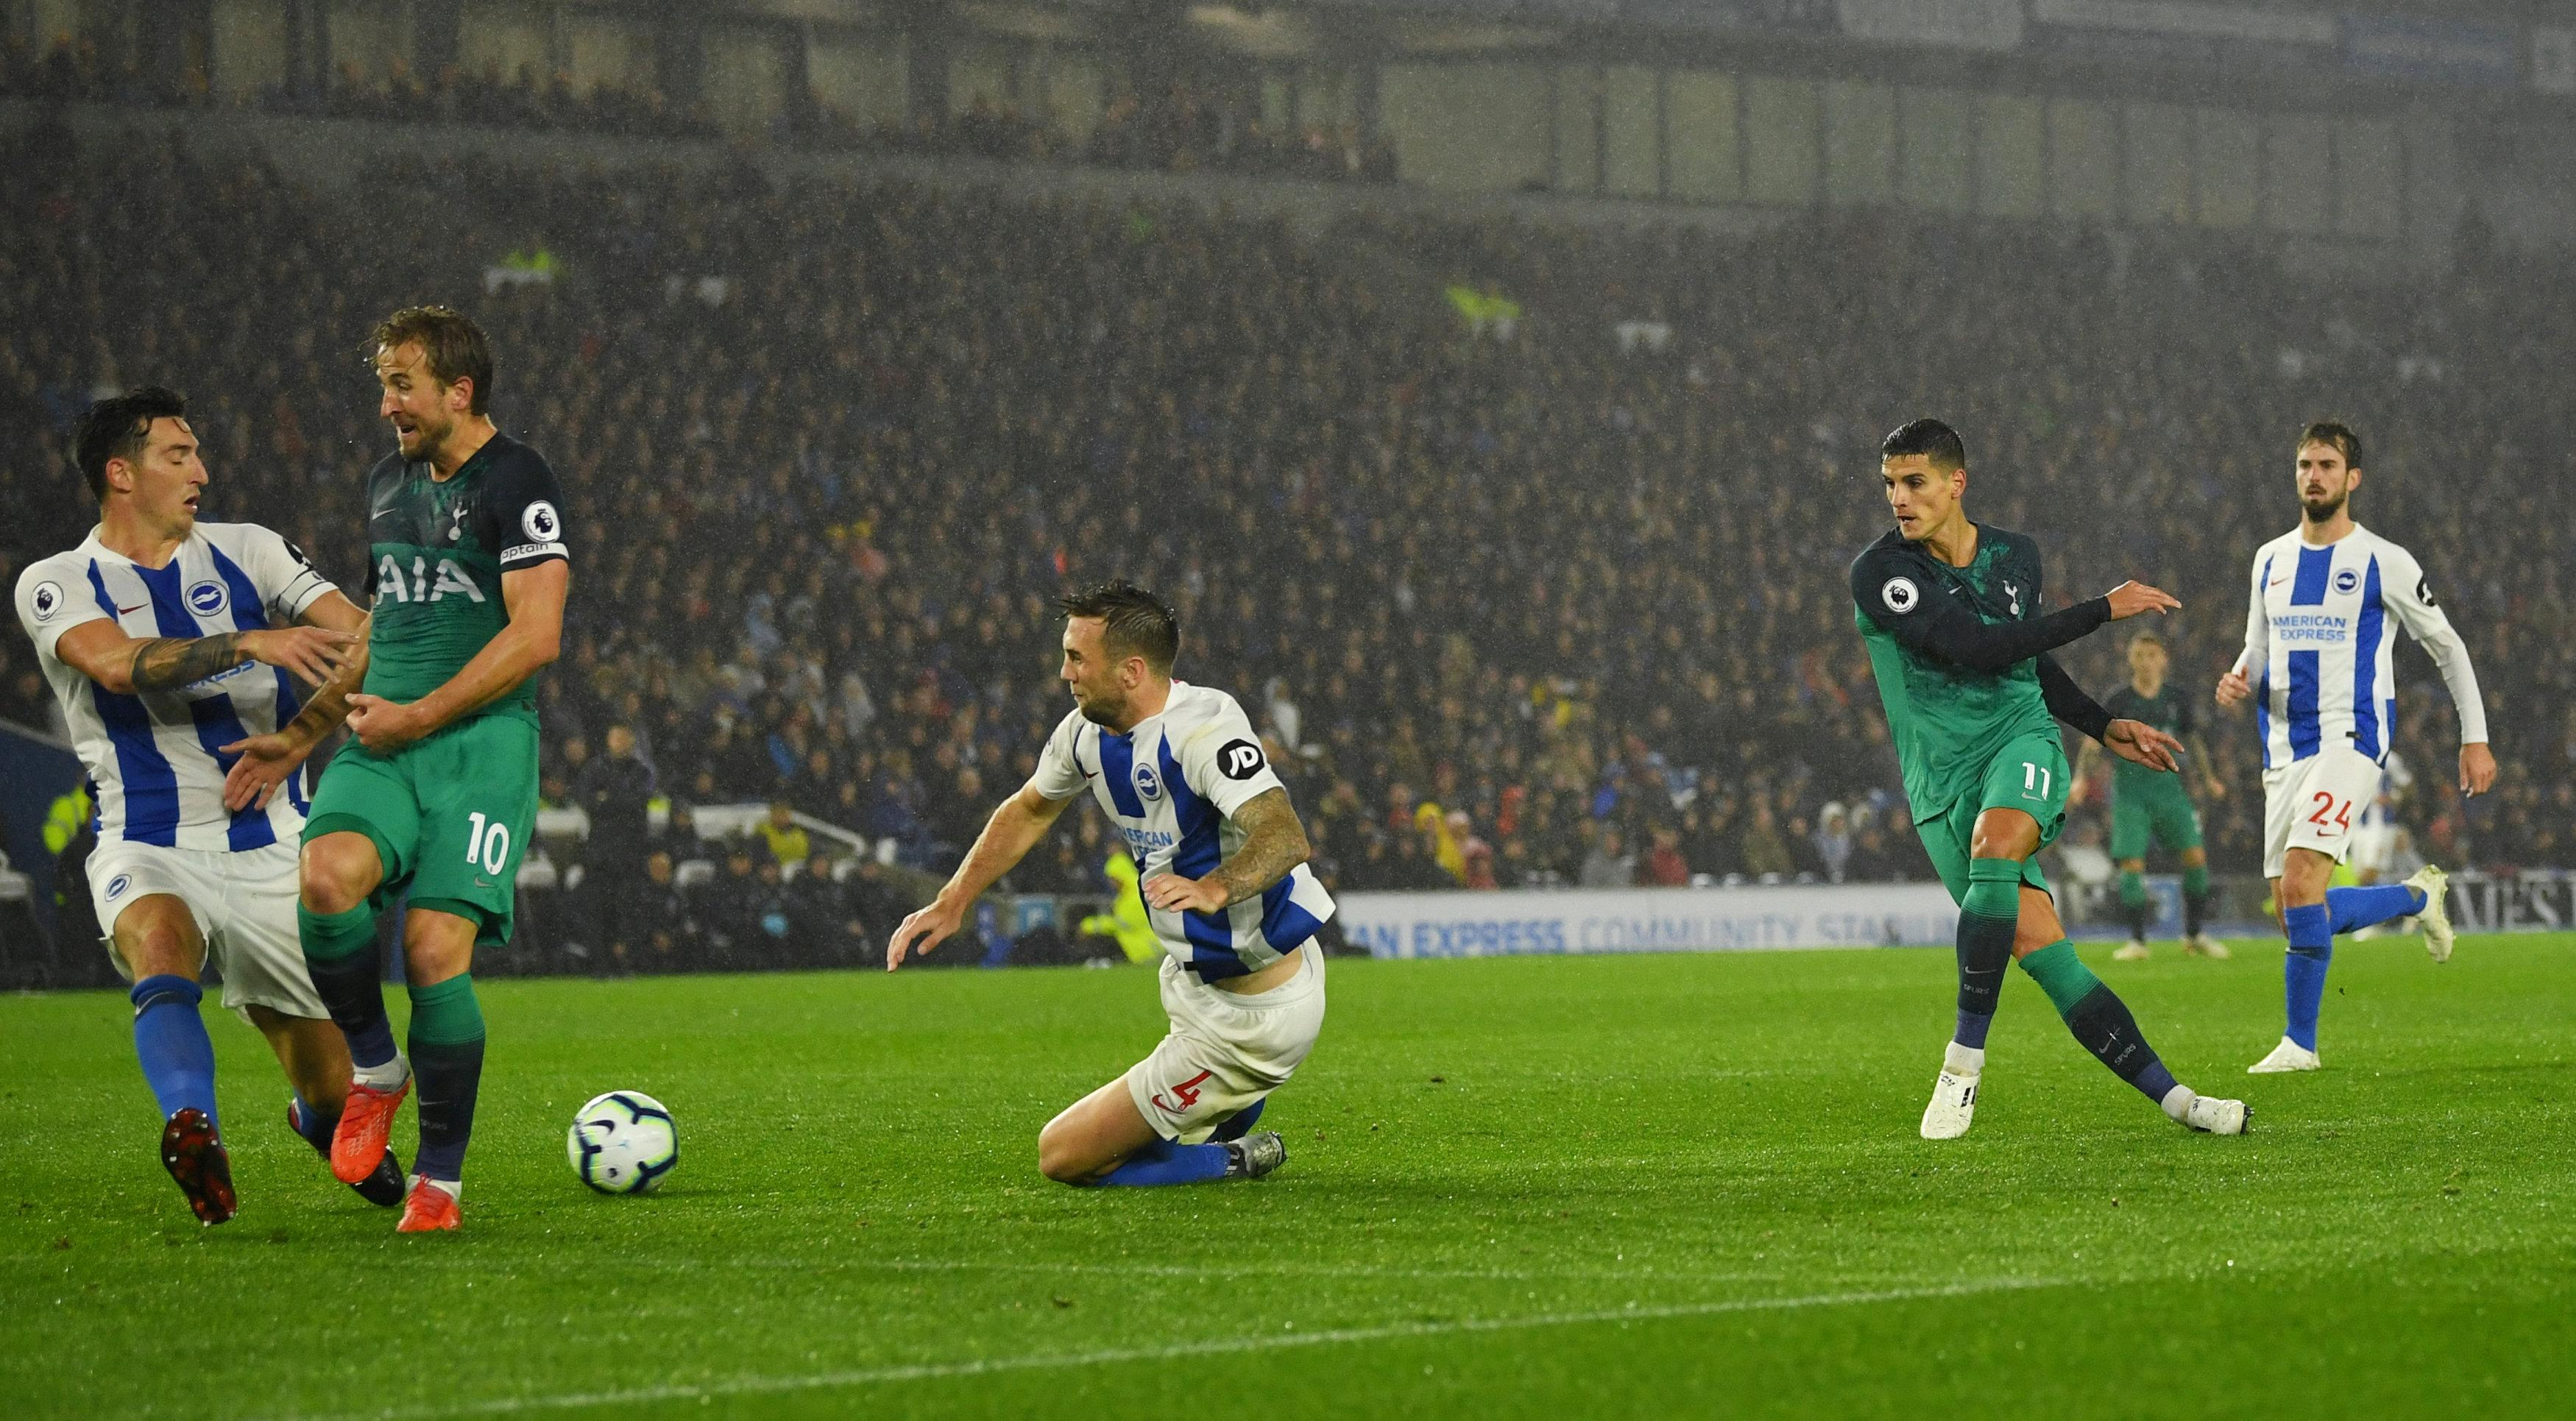 Erik Lamela superbly swept home Tottenham's second of the evening